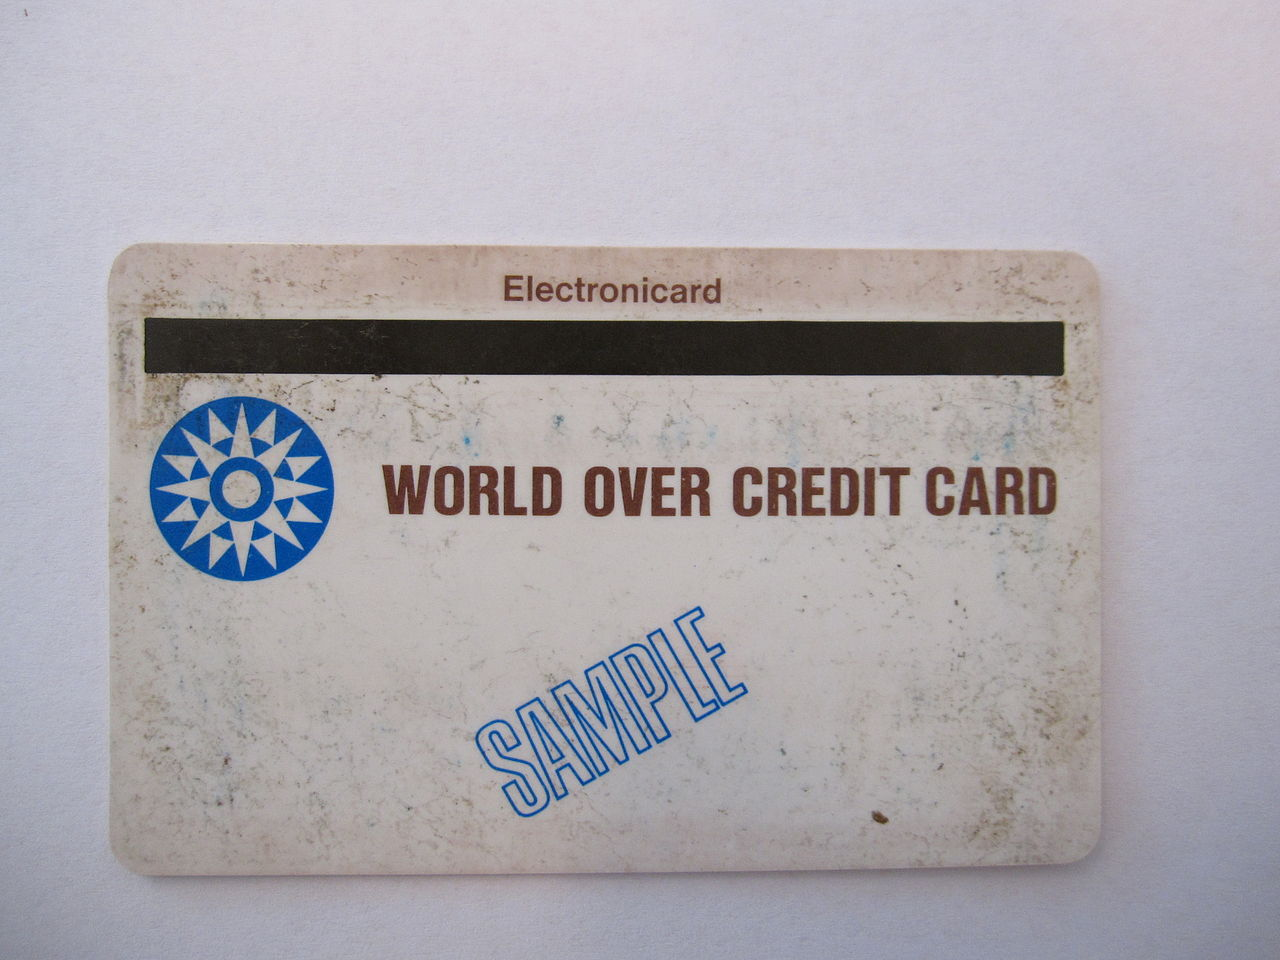 1280px-2._Front_of_first_mag_striped_encoded_plastic_card.jpg